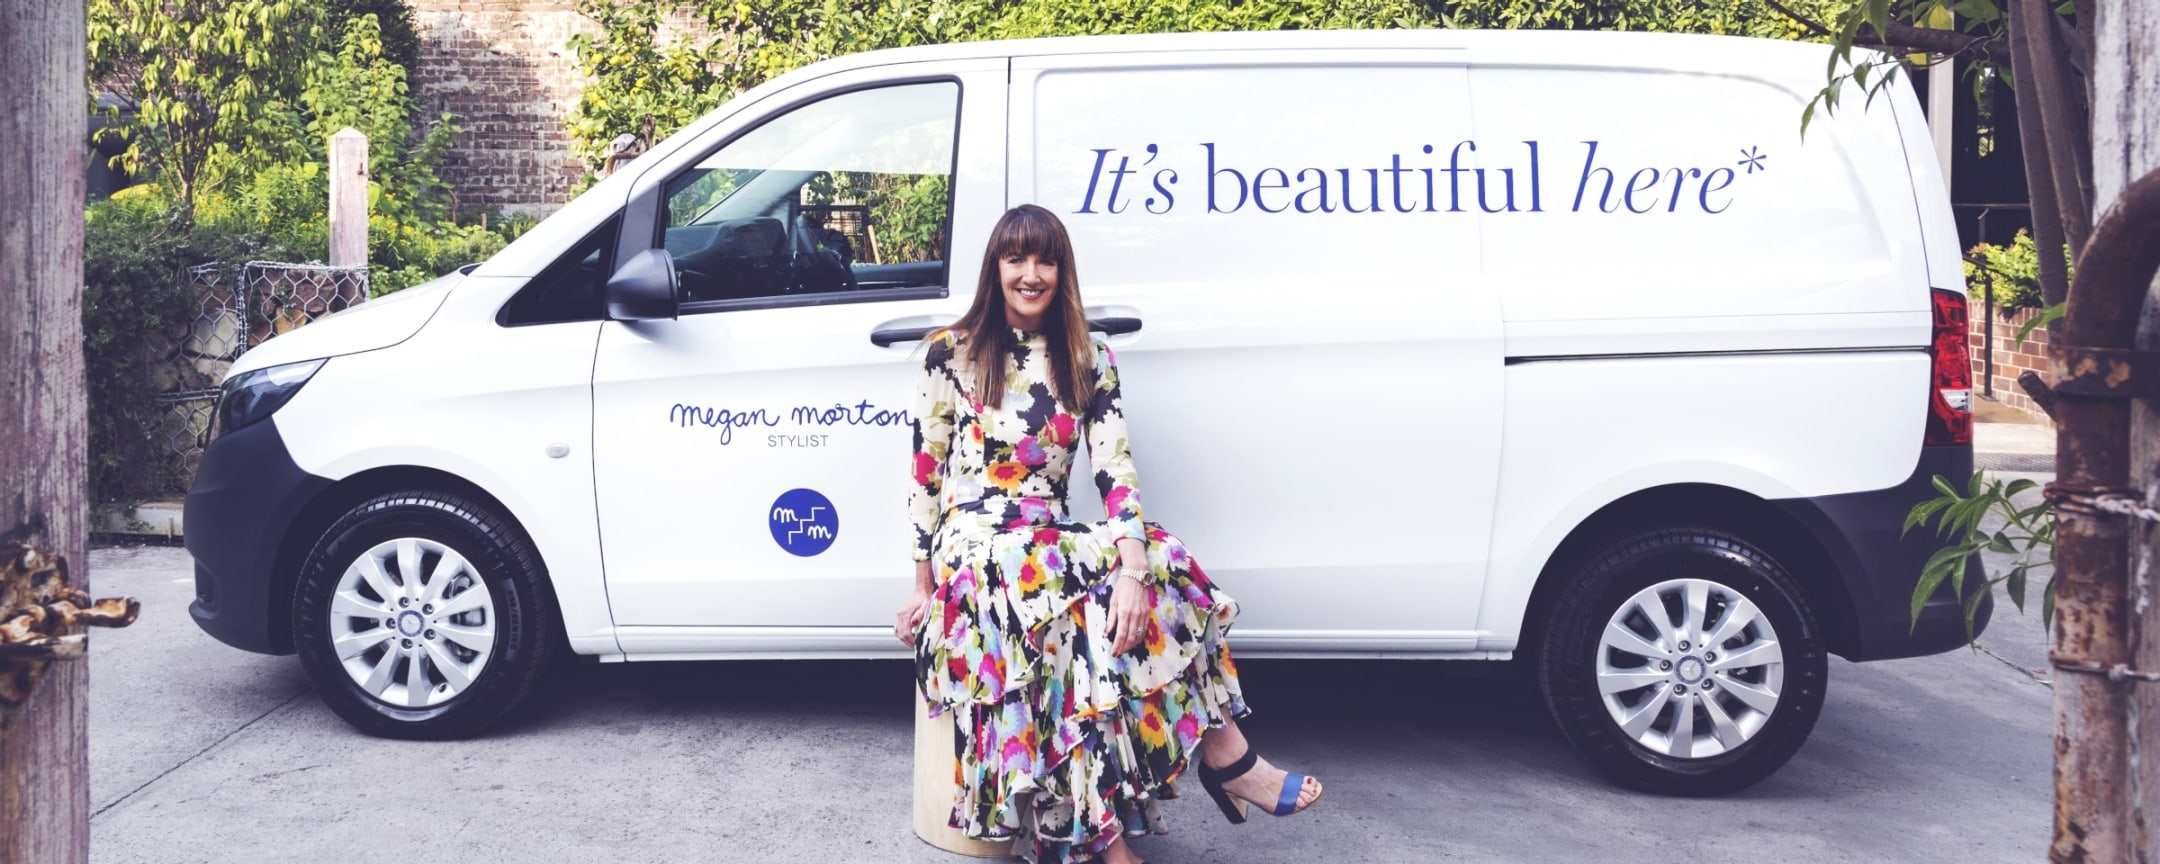 Vans, Love your work, Vito ambassador megan morton, Style on wheels